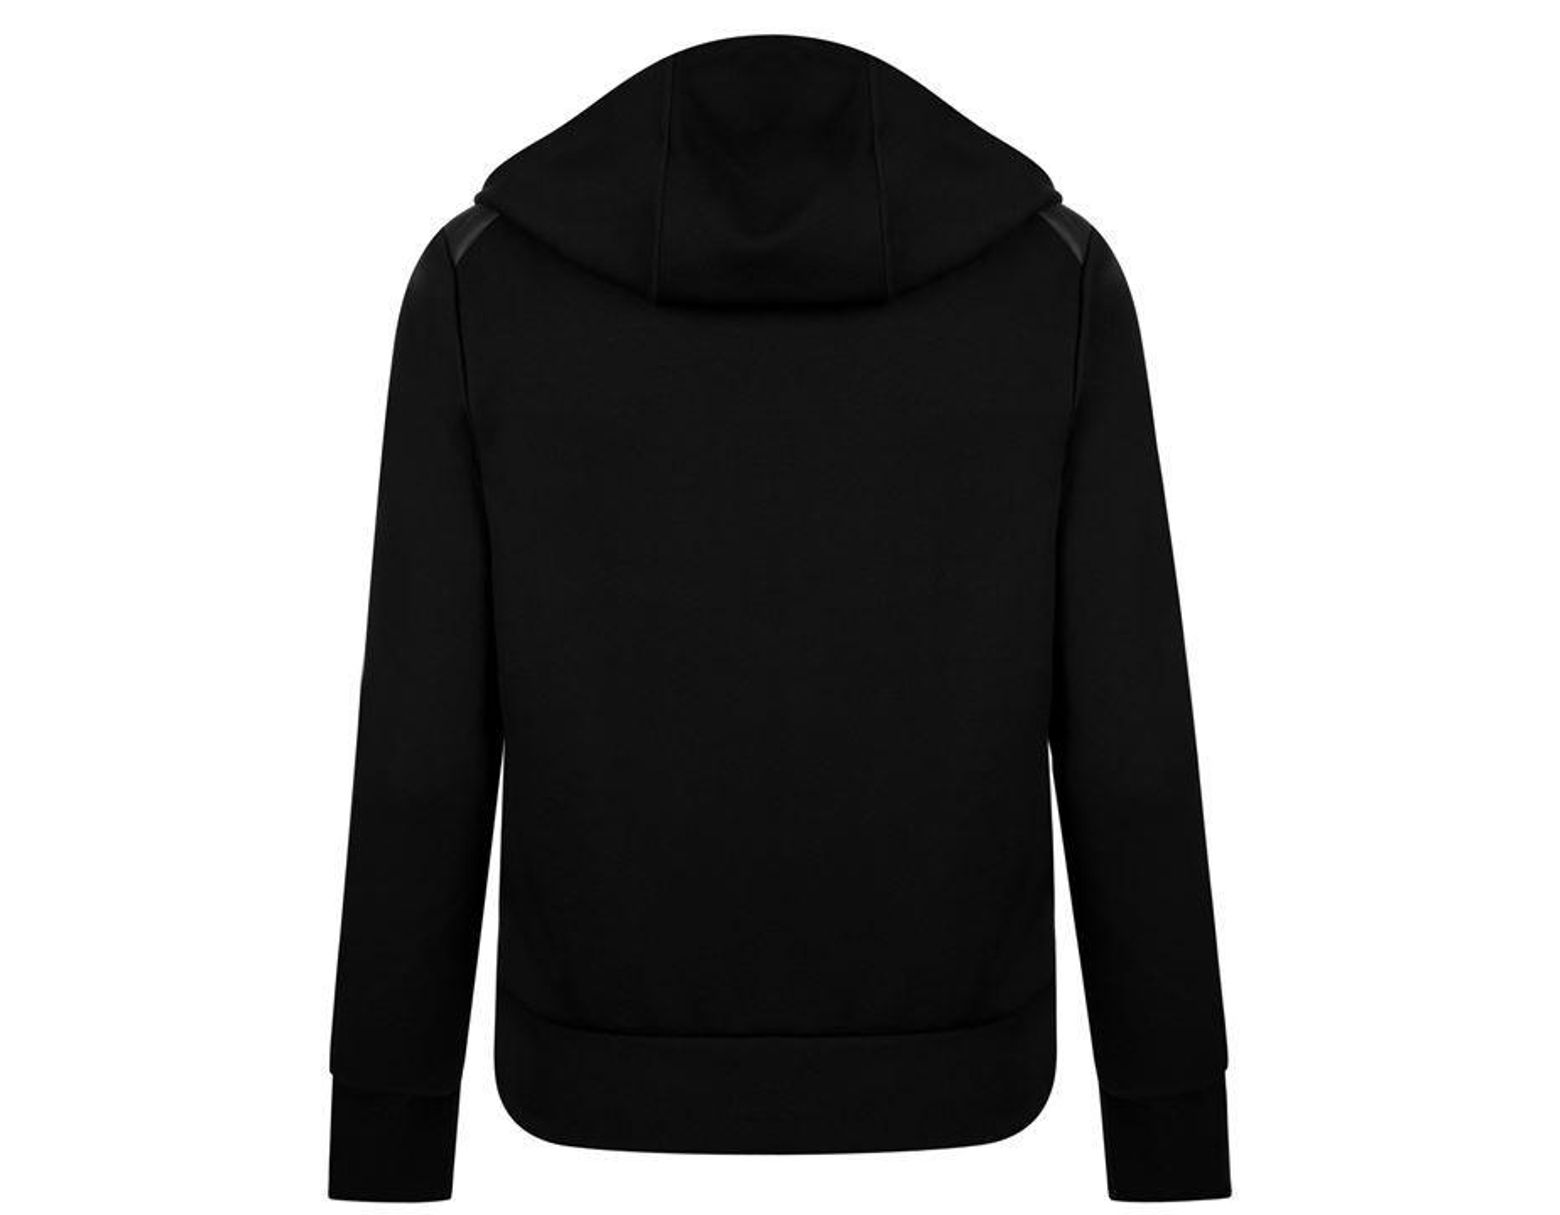 Black Hooded Sweatshirt Hooded Men's Men's Black Men's Quilted Black Quilted Sweatshirt Quilted eCxodB